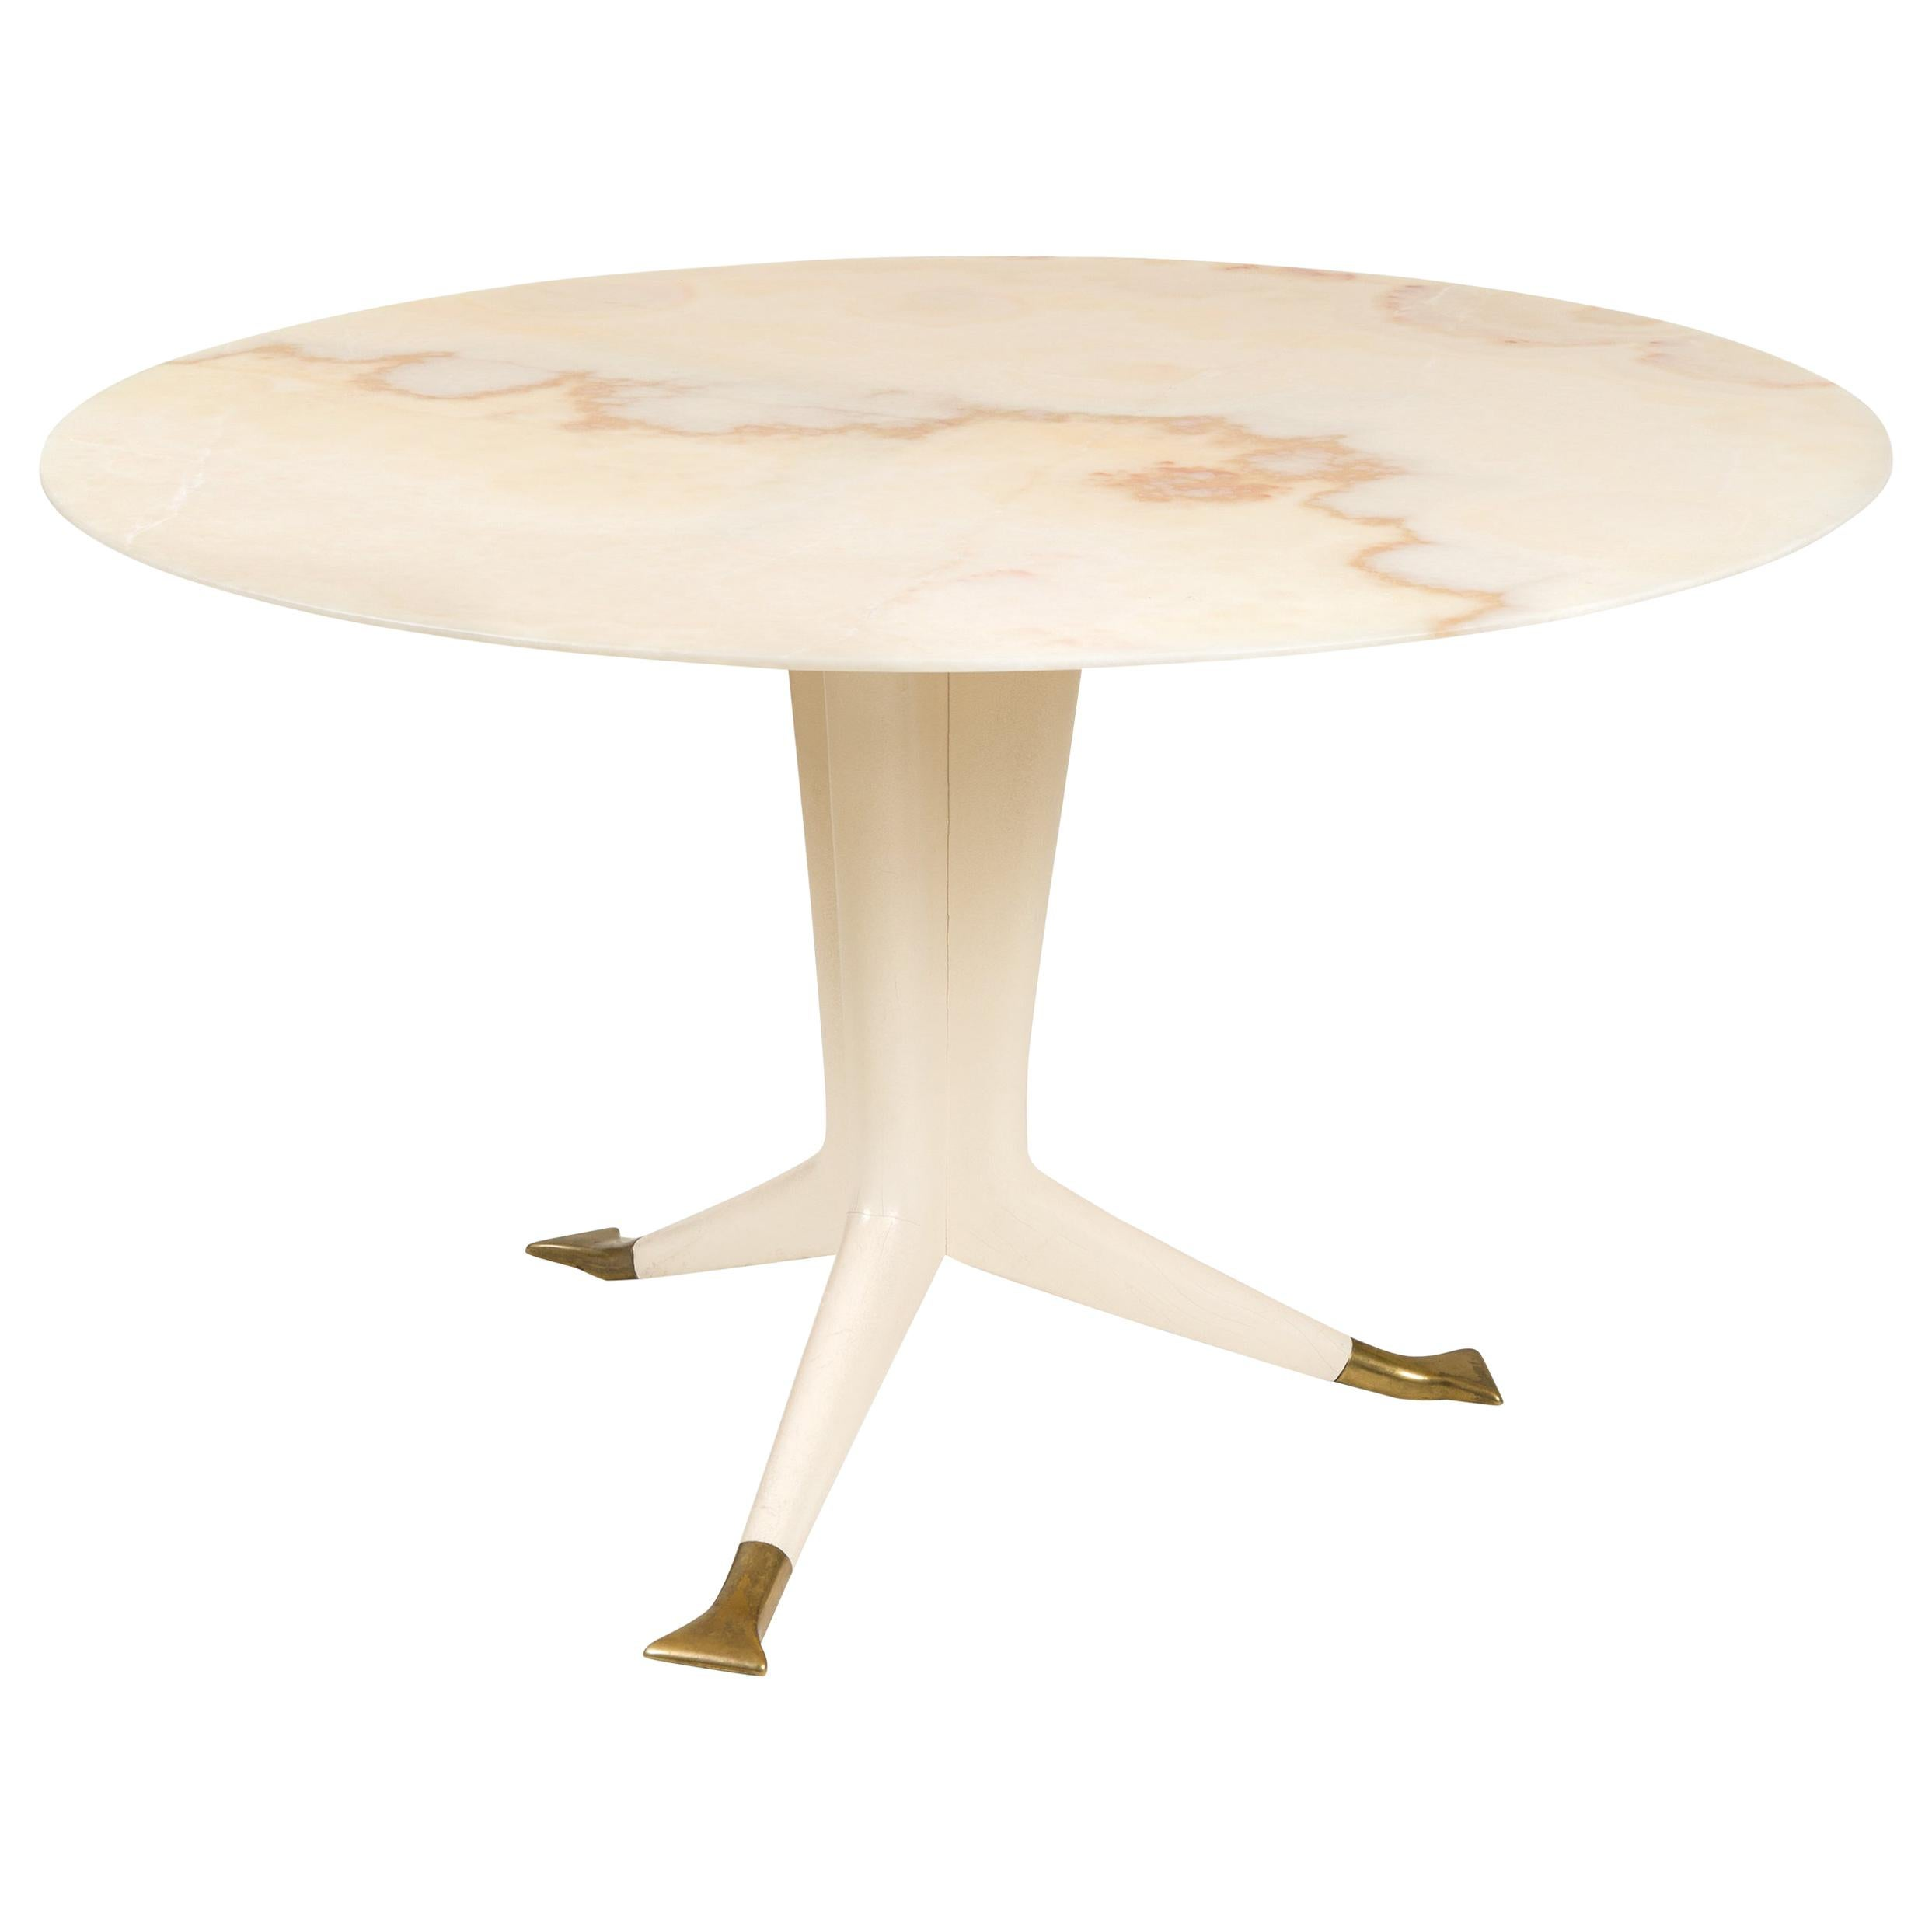 Ico Parisi Round Marble-Top Table with Three Brass Footed Legs, Italy 1950s